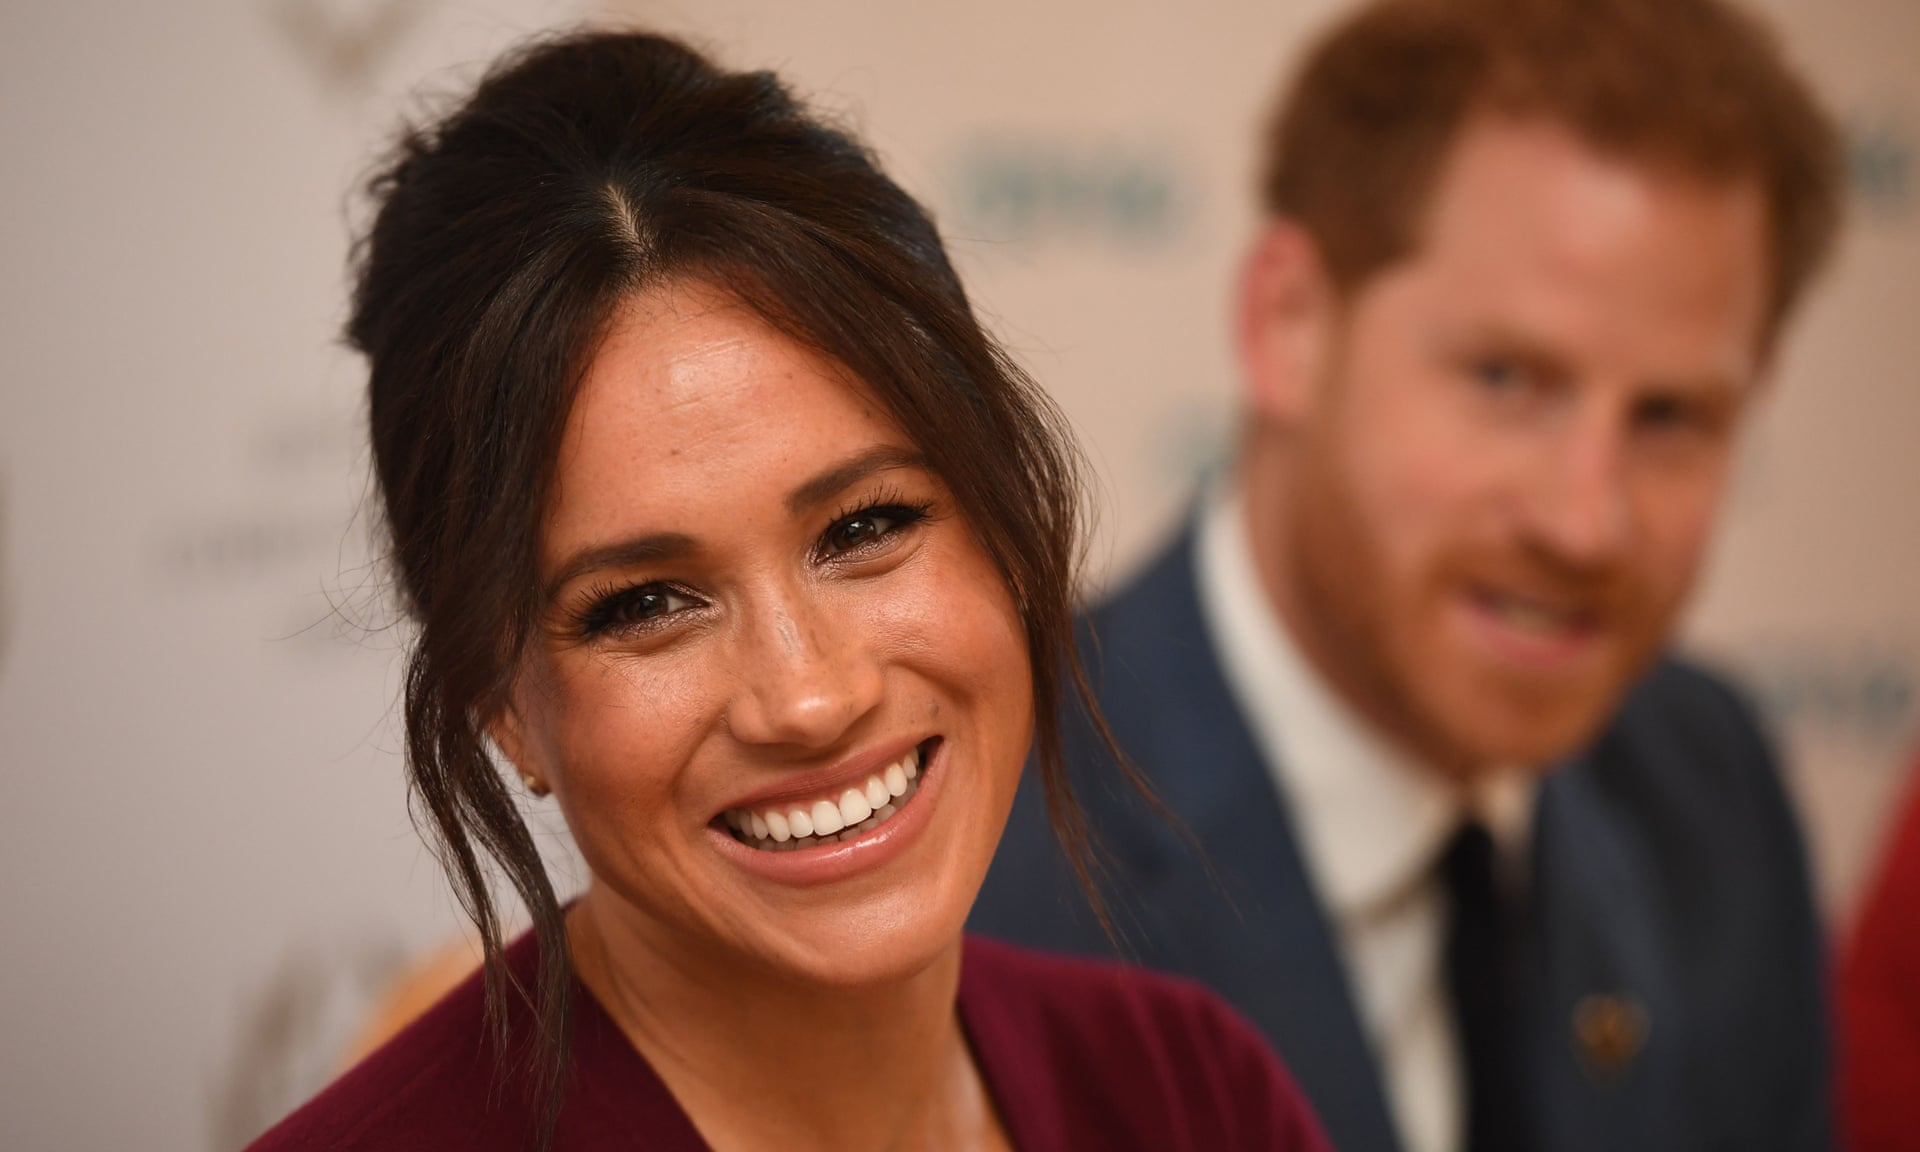 Meghan privacy claim against Mail on Sunday owner 'continues' despite setback